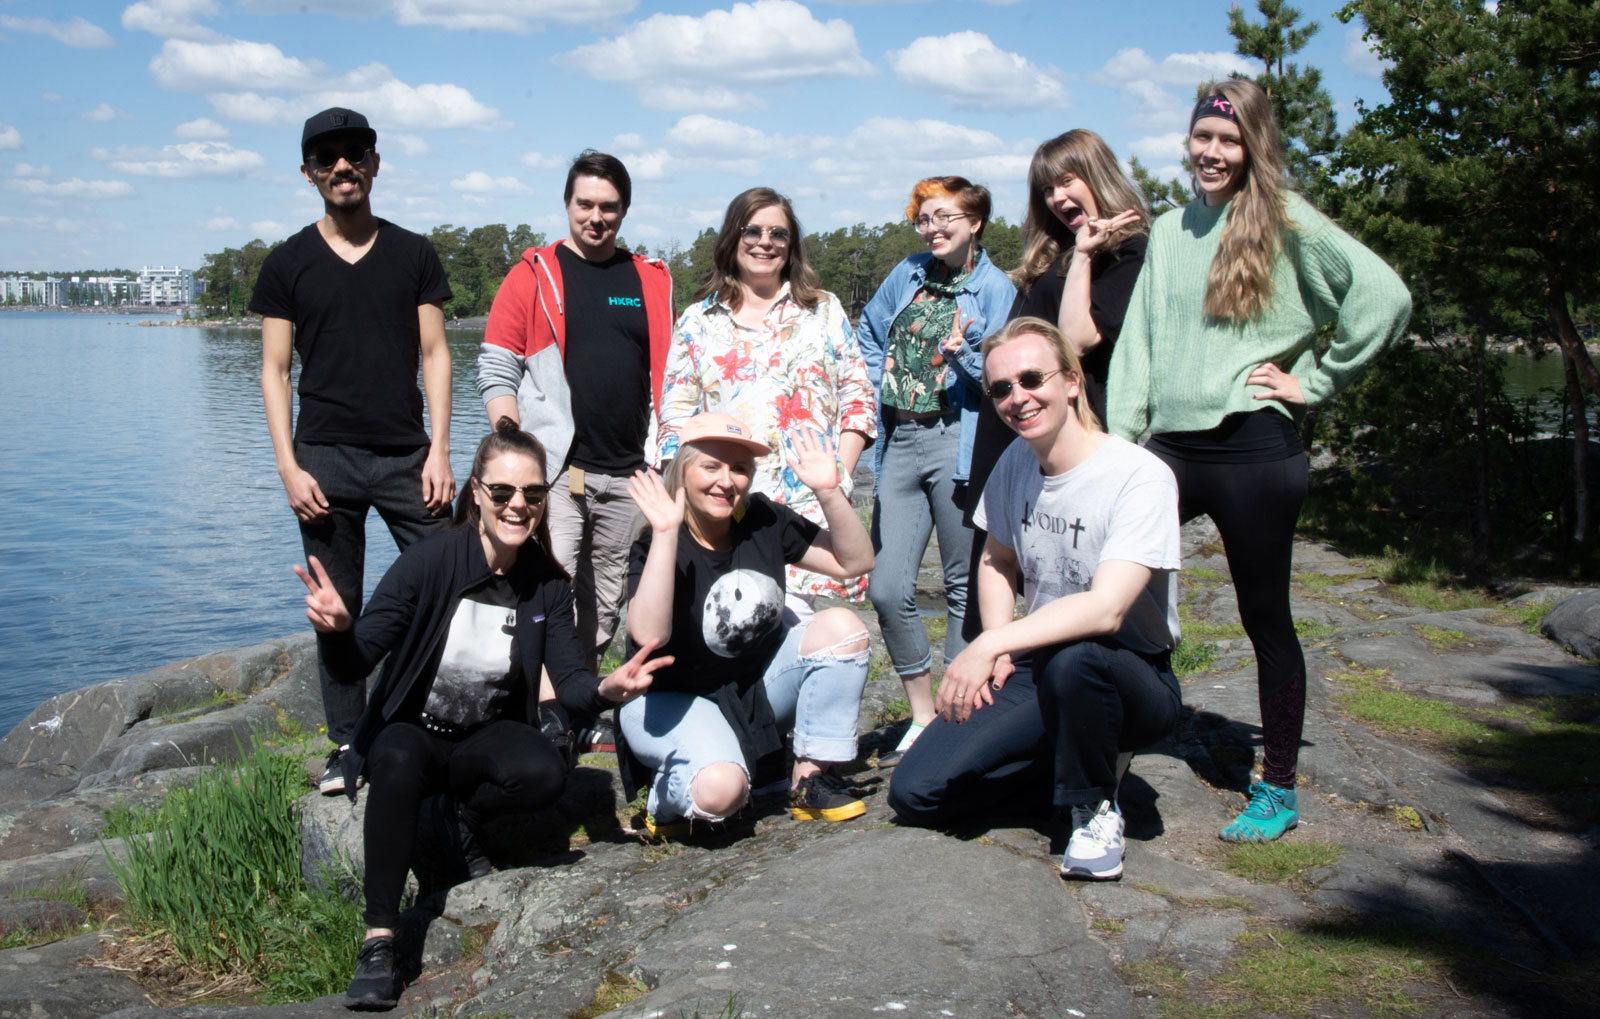 Nine members of the Helsinki XR Center team posing on a cliff by the sea.